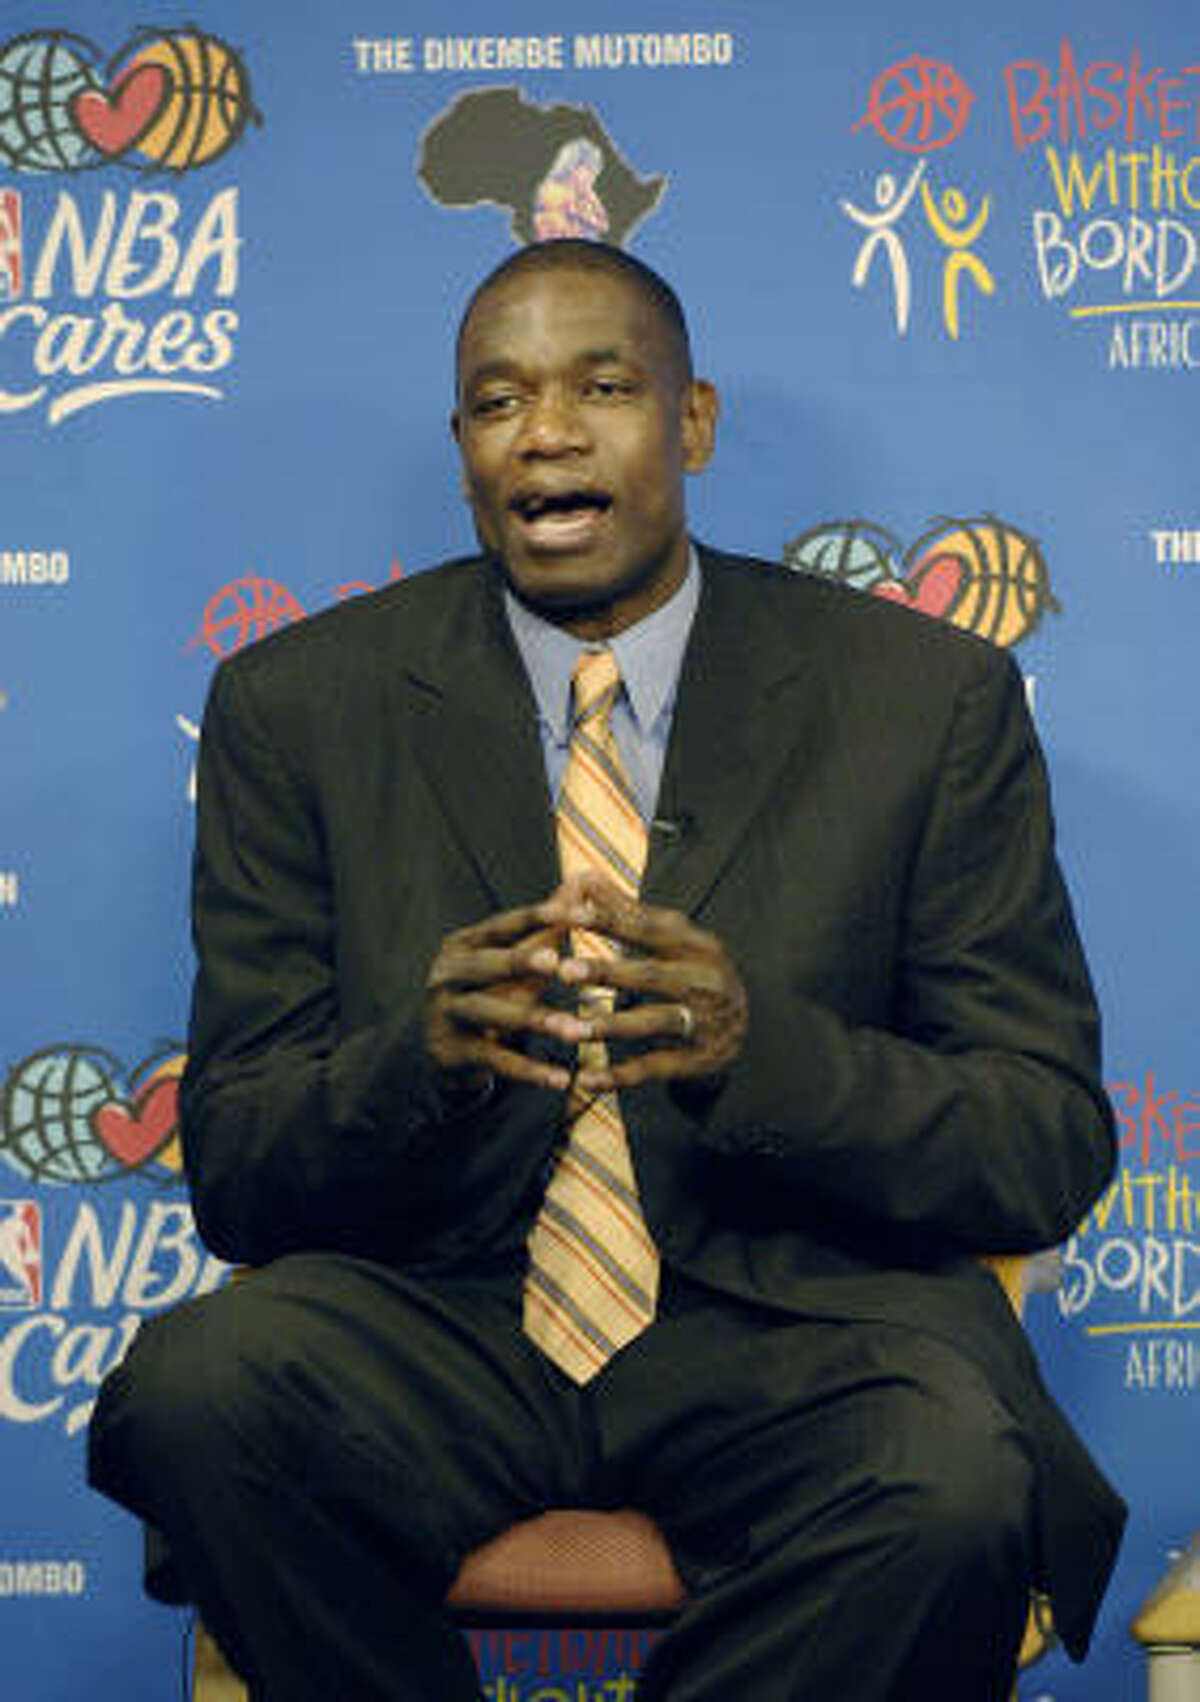 The Biamba Marie Mutombo Hospital and Research Center, named after Dikembe Mutumbo's mother, will open in September and has attracted support from the National Basketball Association (NBA) and NBA players. (Photo credit should read STAN HONDA/AFP/Getty Images)